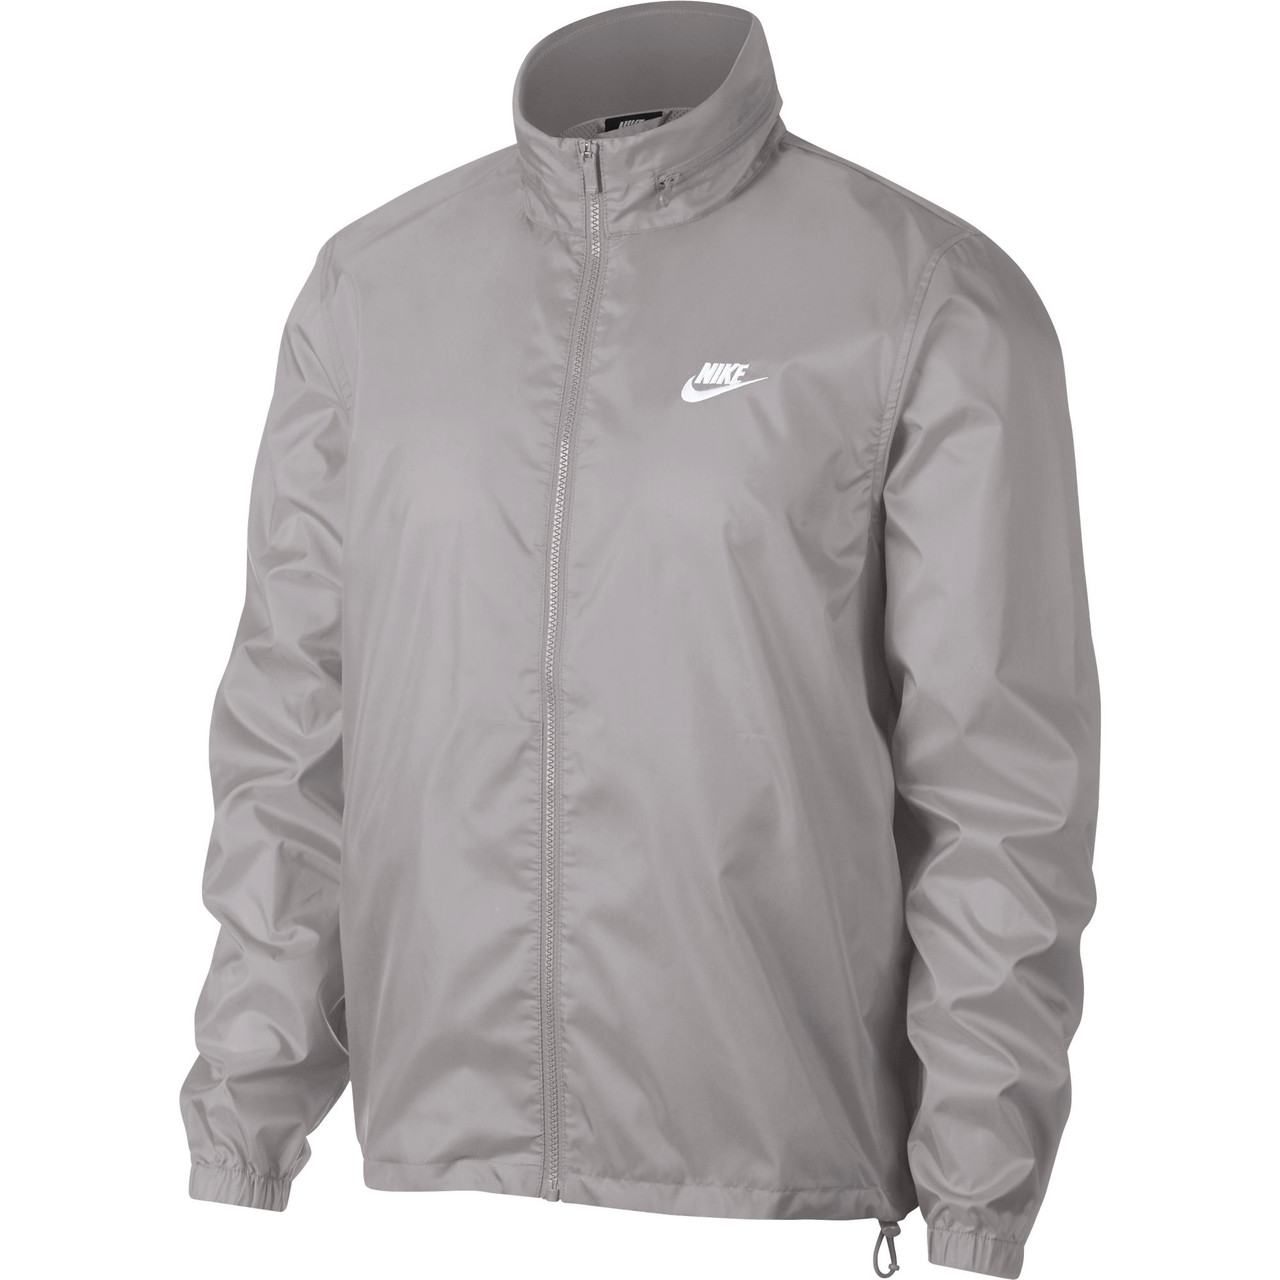 windbreaker jackets nike